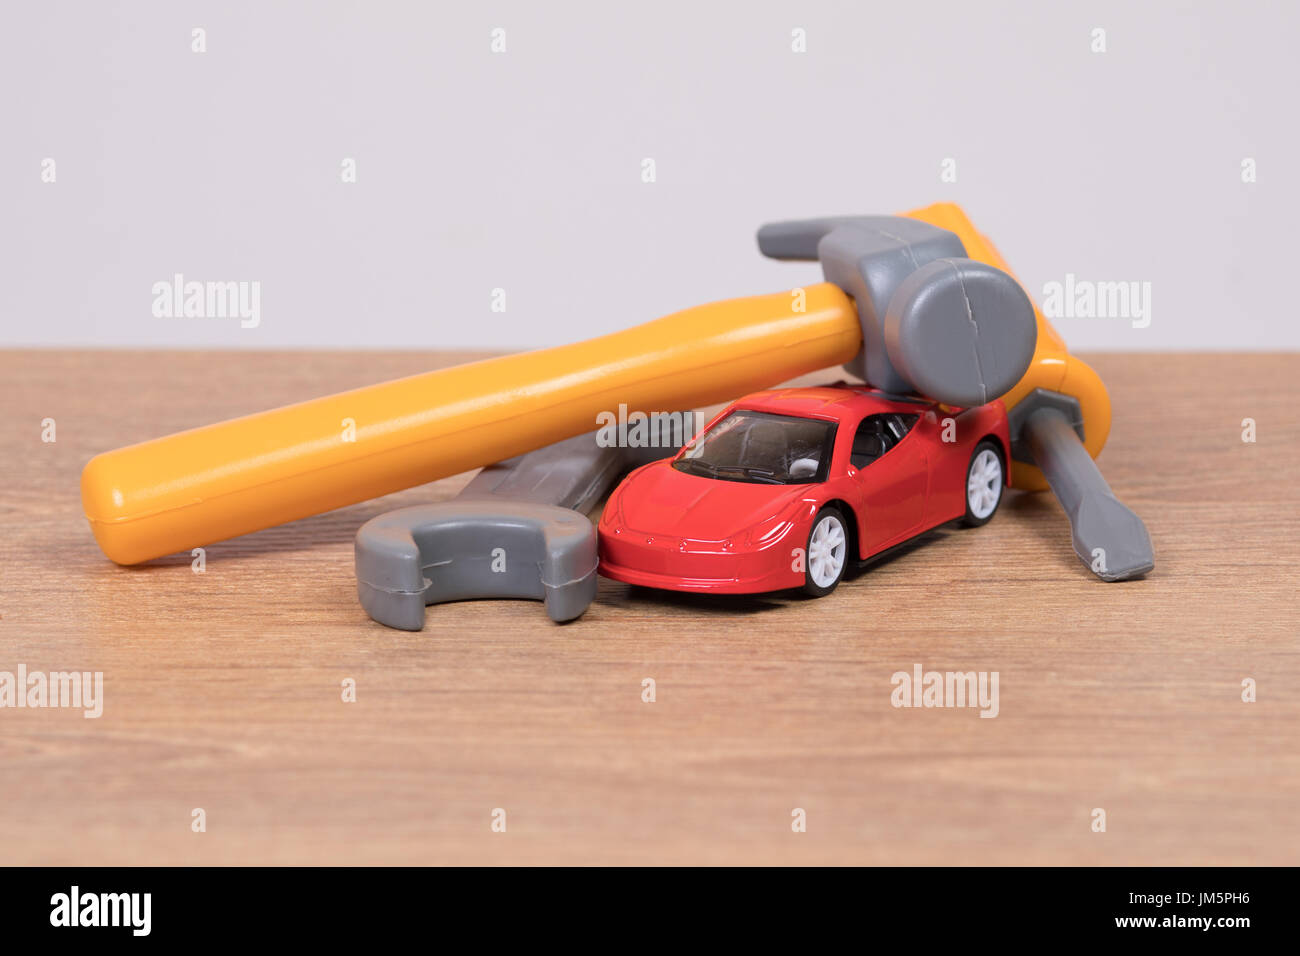 Three Plastic Toy Tools On Small Model Car Garage Repair Concept